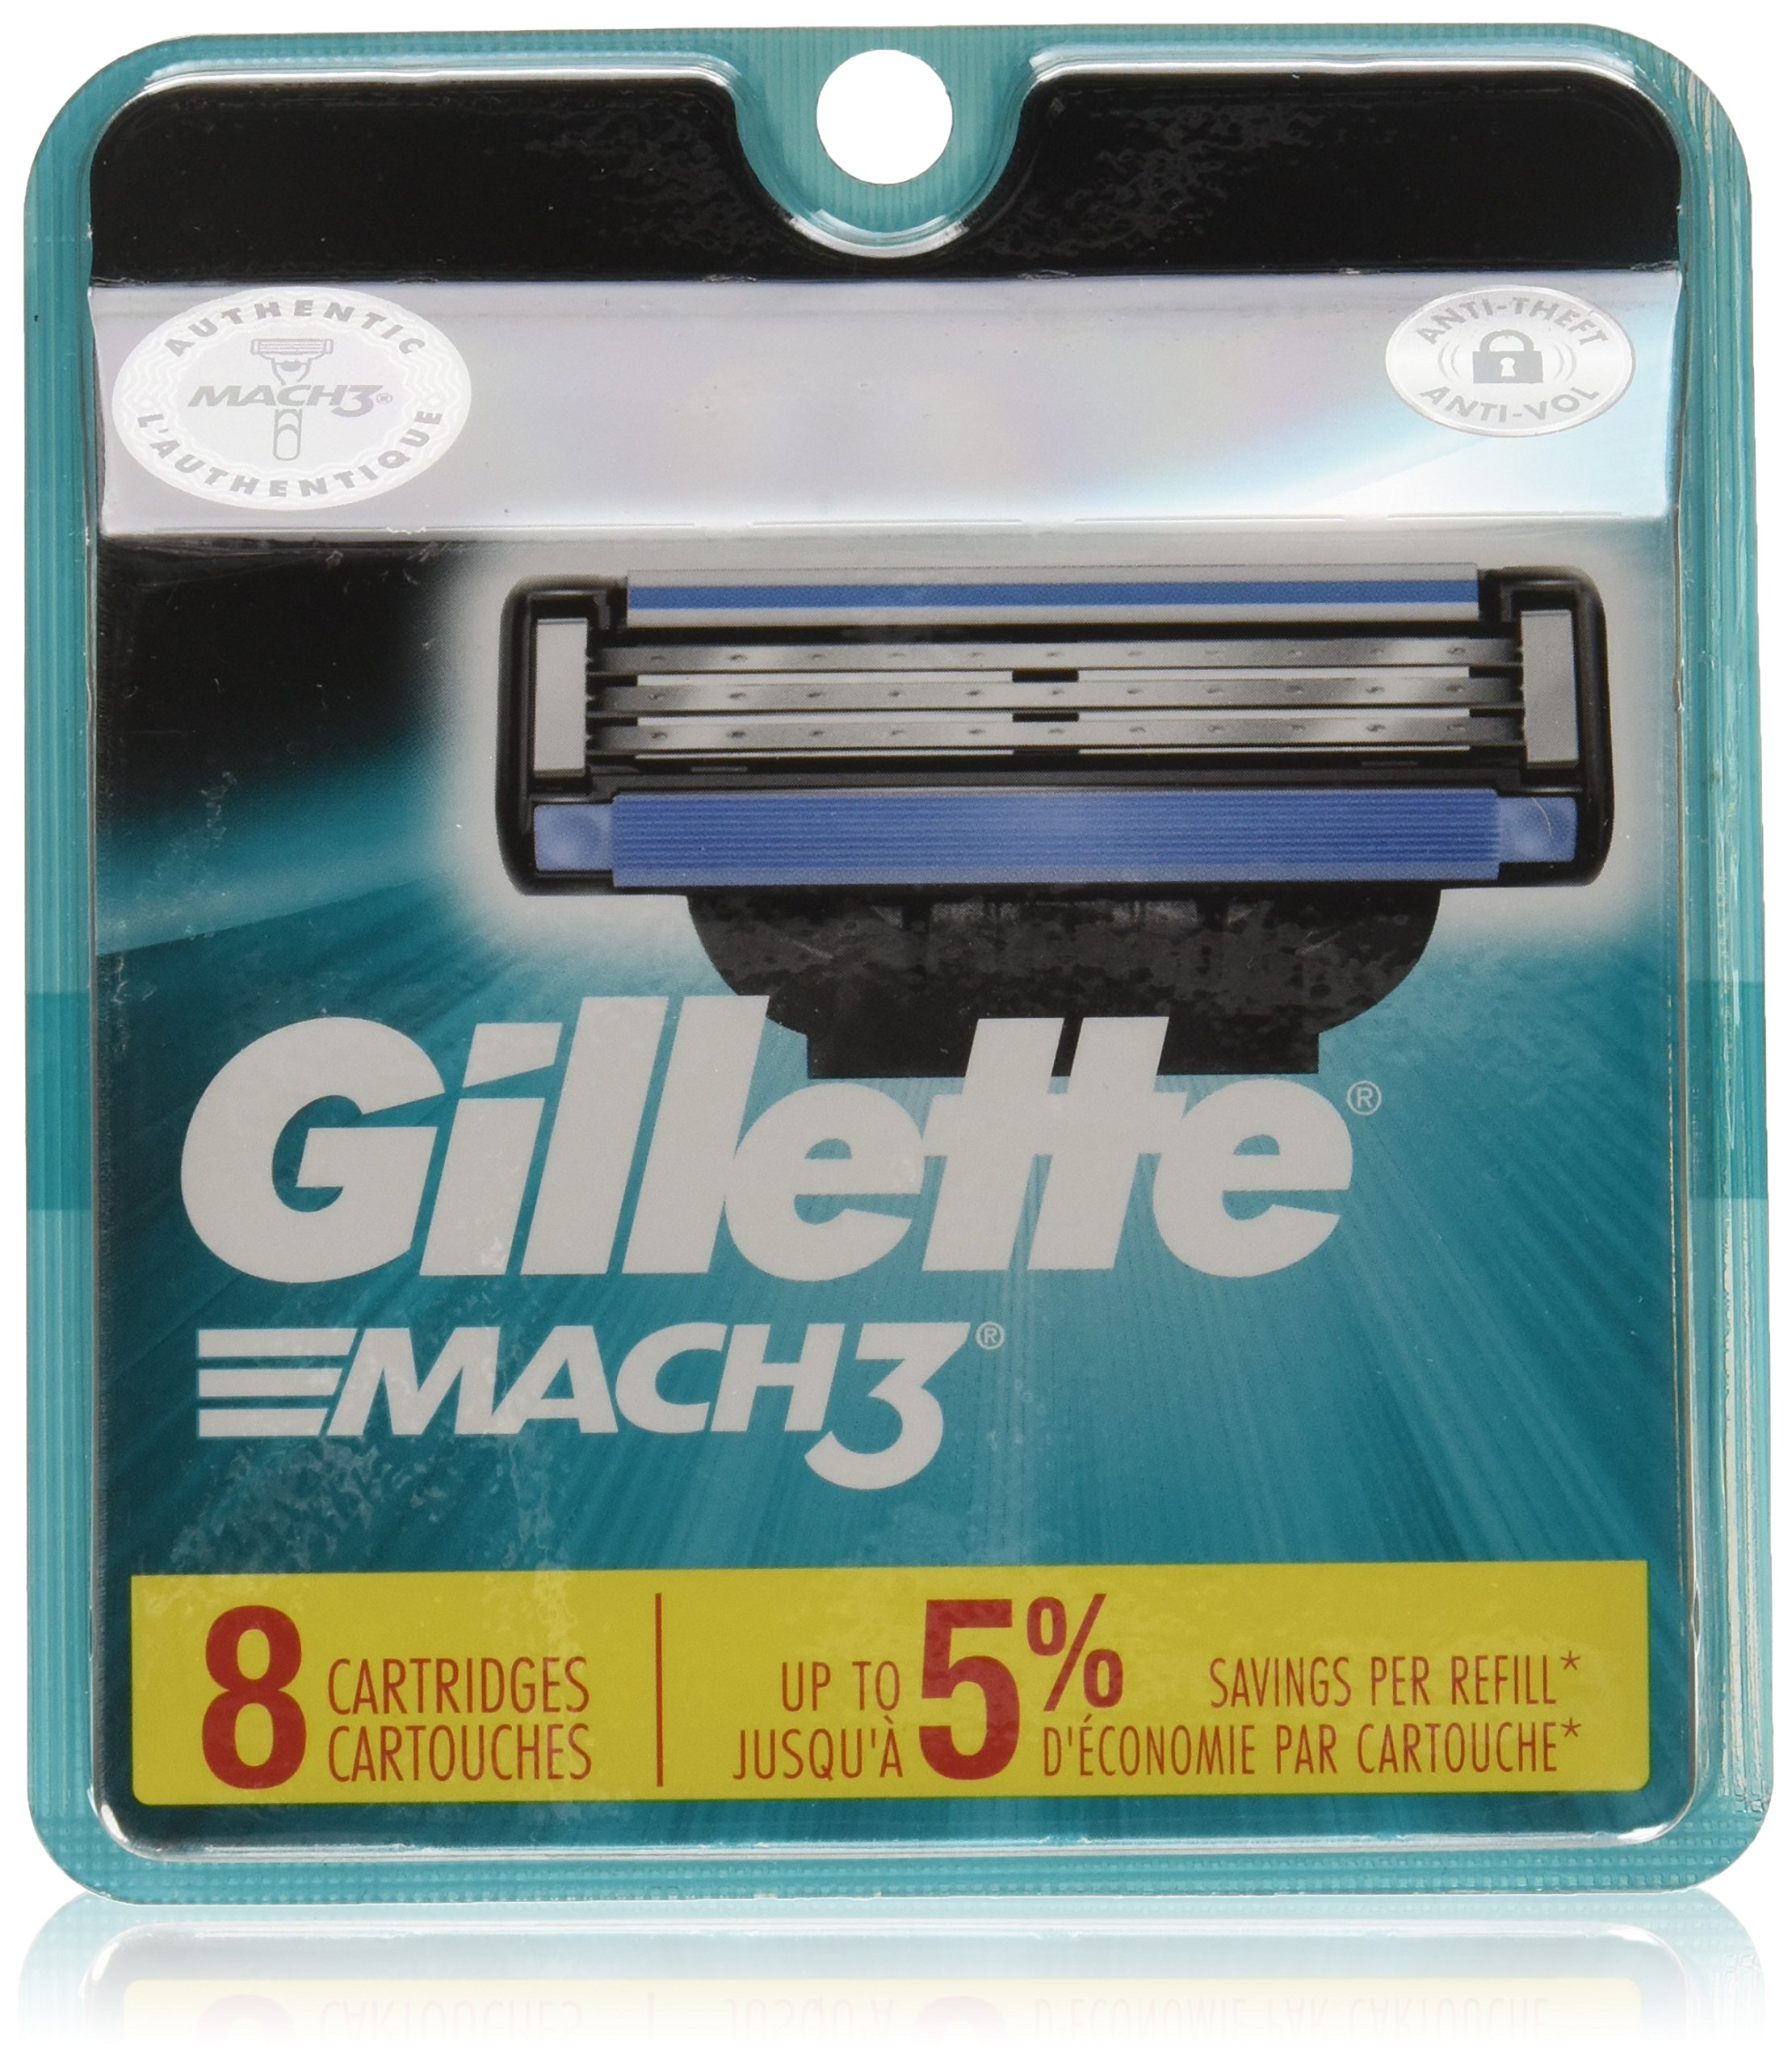 Gillette Mach3 Men's Razor Blades, 8 Blade Refills (Packaging May Vary) by Gillette (Image #1)